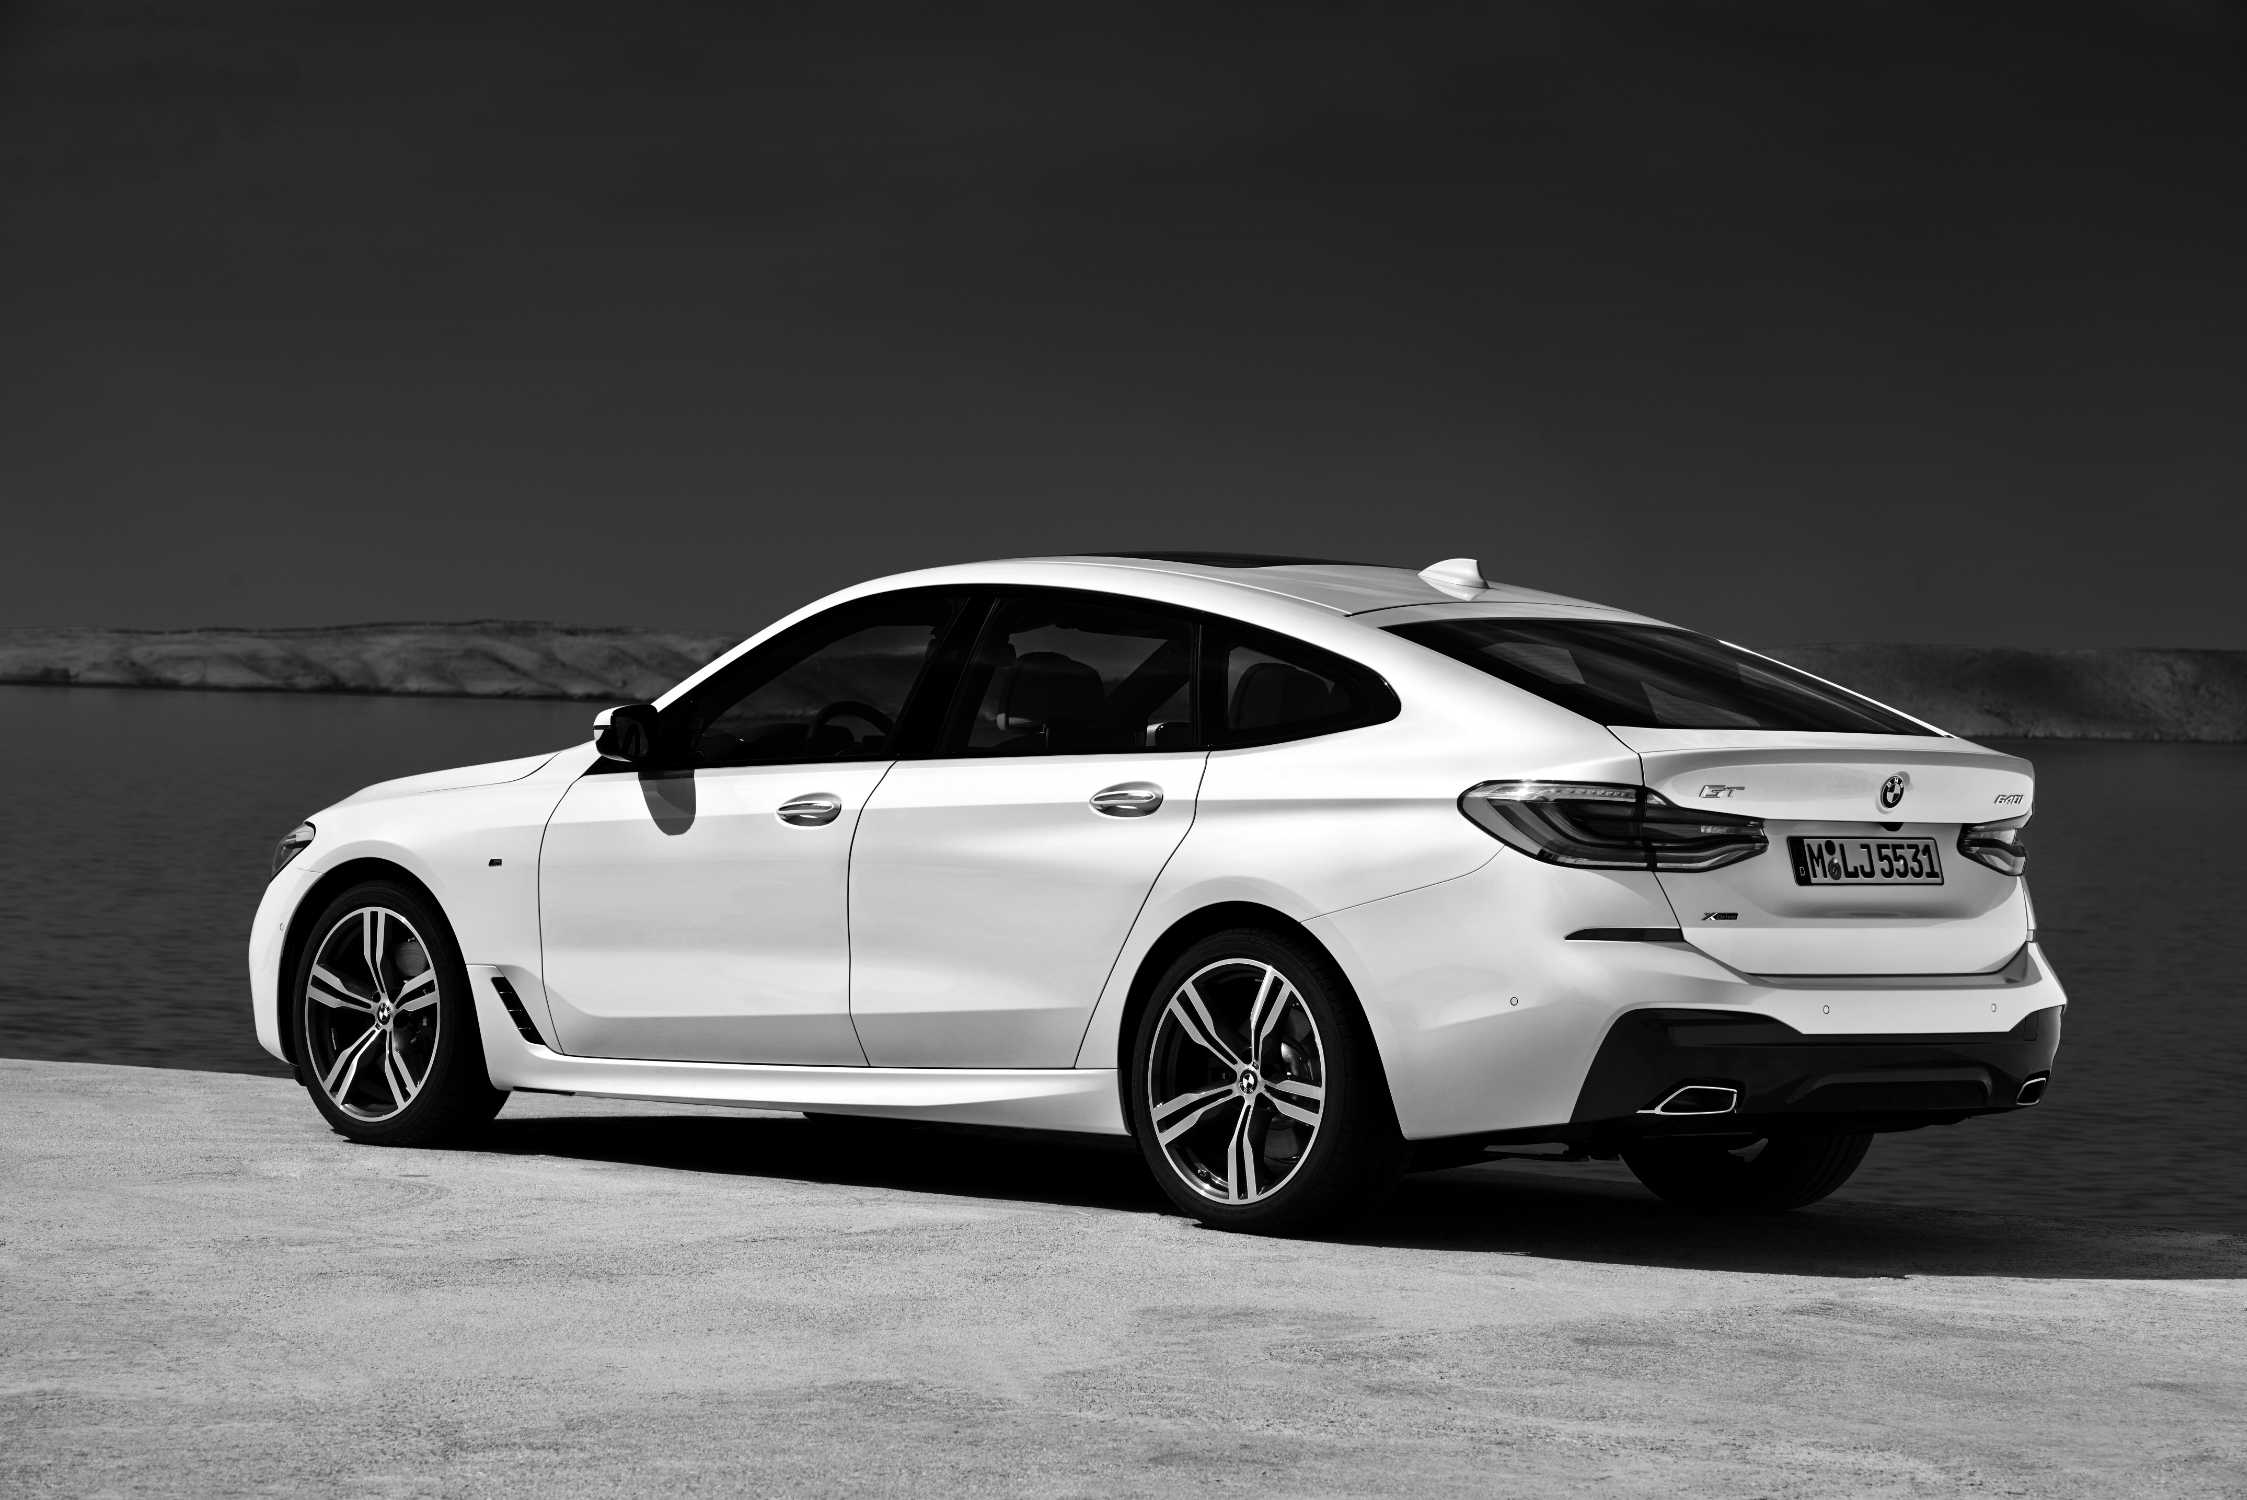 BMW 6 Series Gran Turismo 640i XDrive Mineral White M Sport Package 06 2017